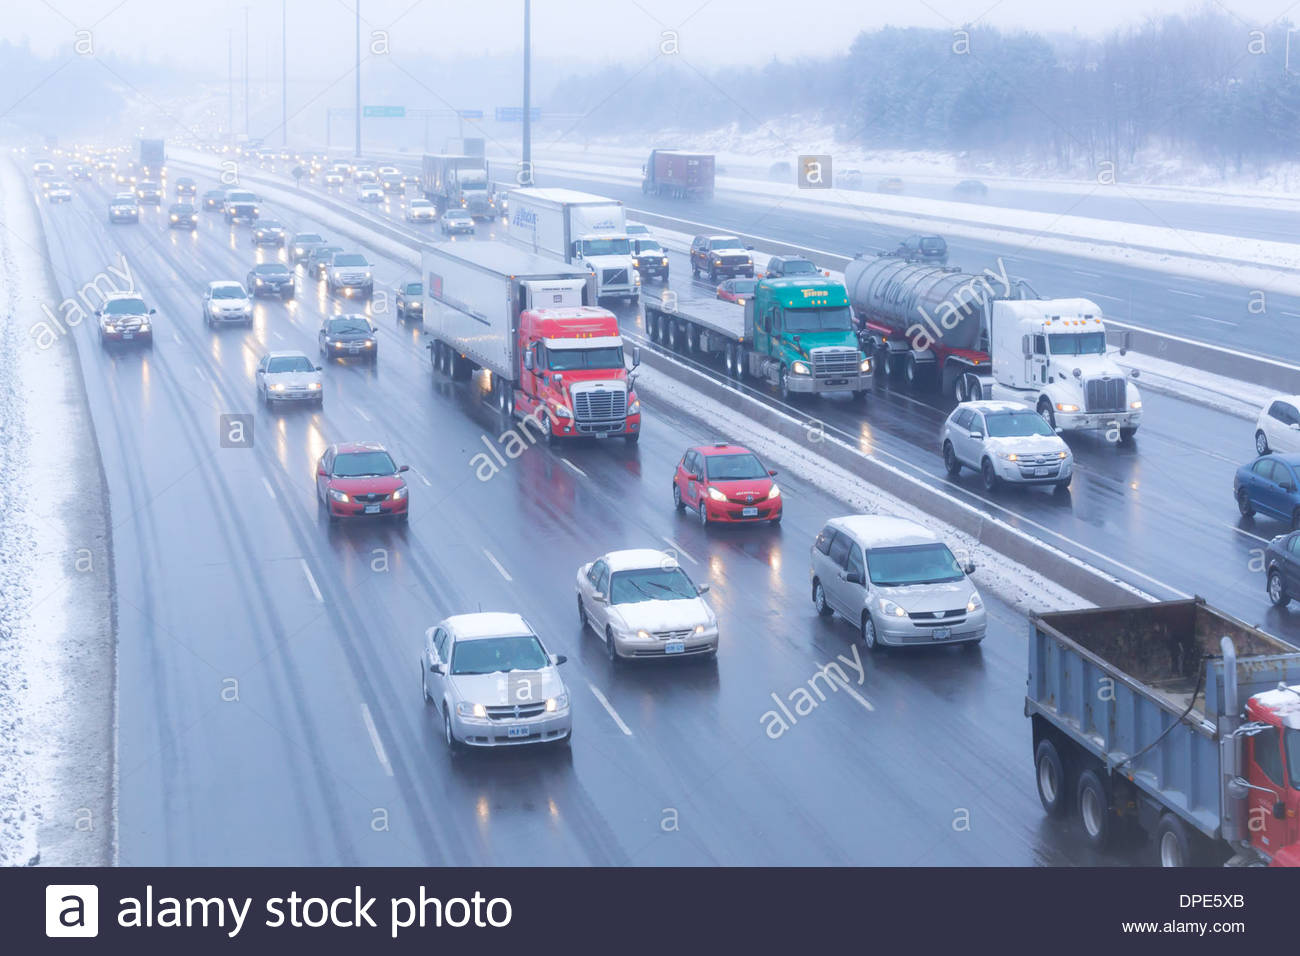 Highway 401 morning inbound commuter traffic jammed up due to freezing rain storm in winter in Toronto Ontario Canada - Stock Image